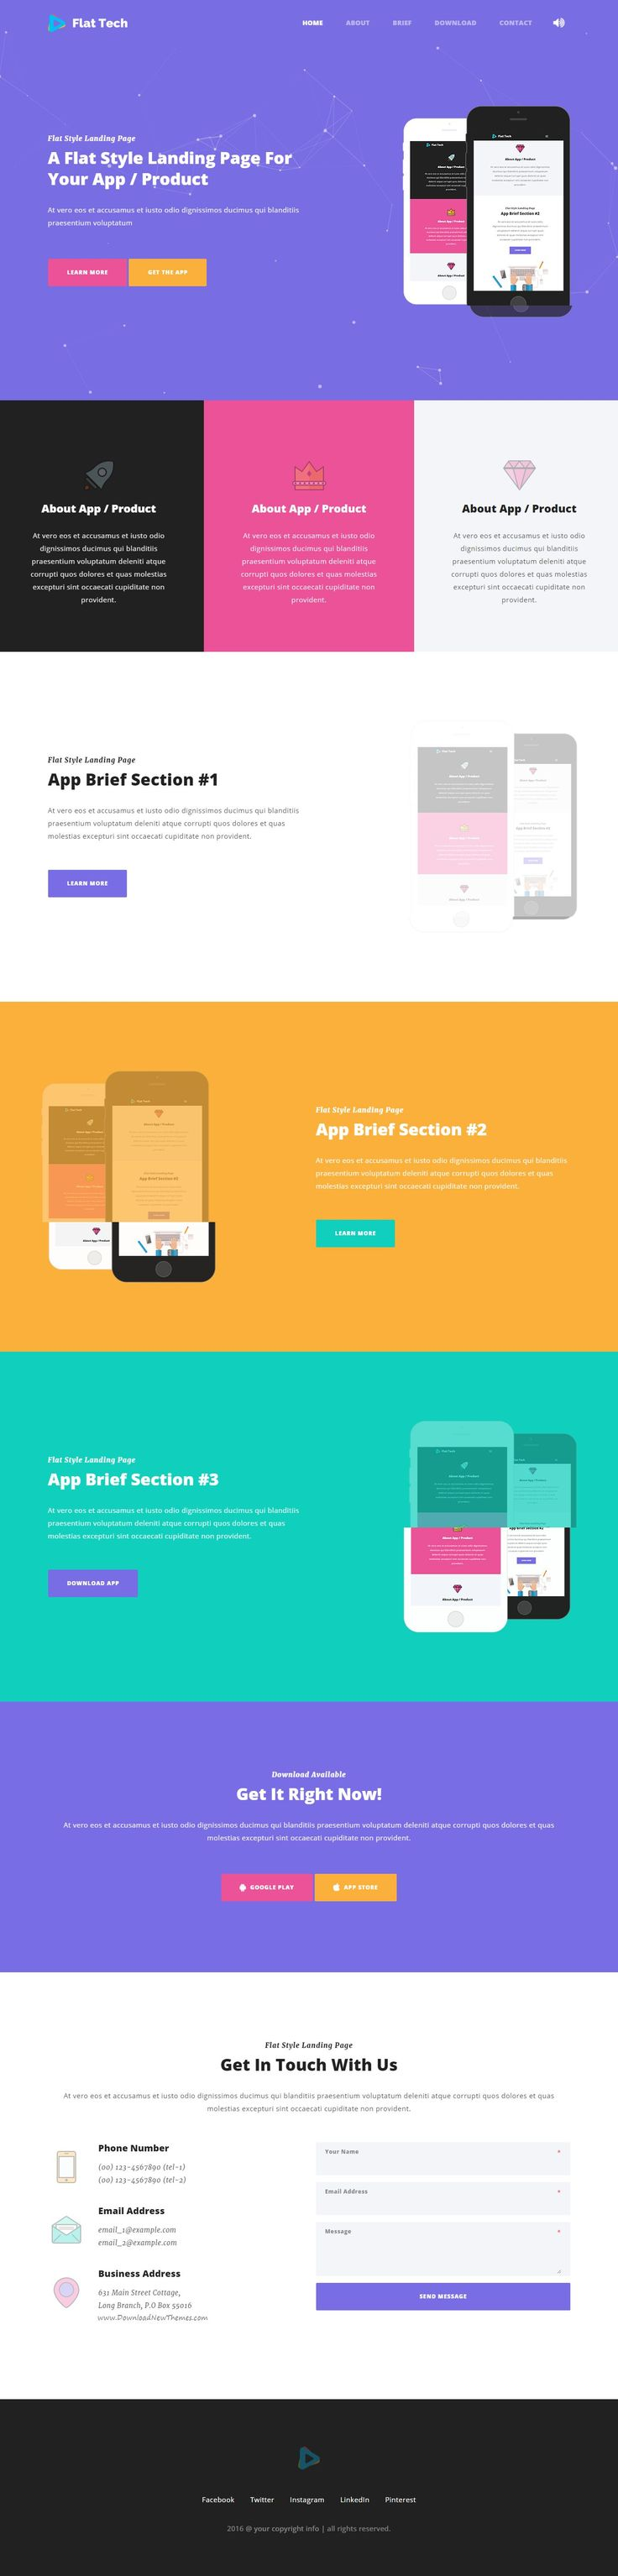 Flat Tech - a very simple and flat style one page landing page #template for…